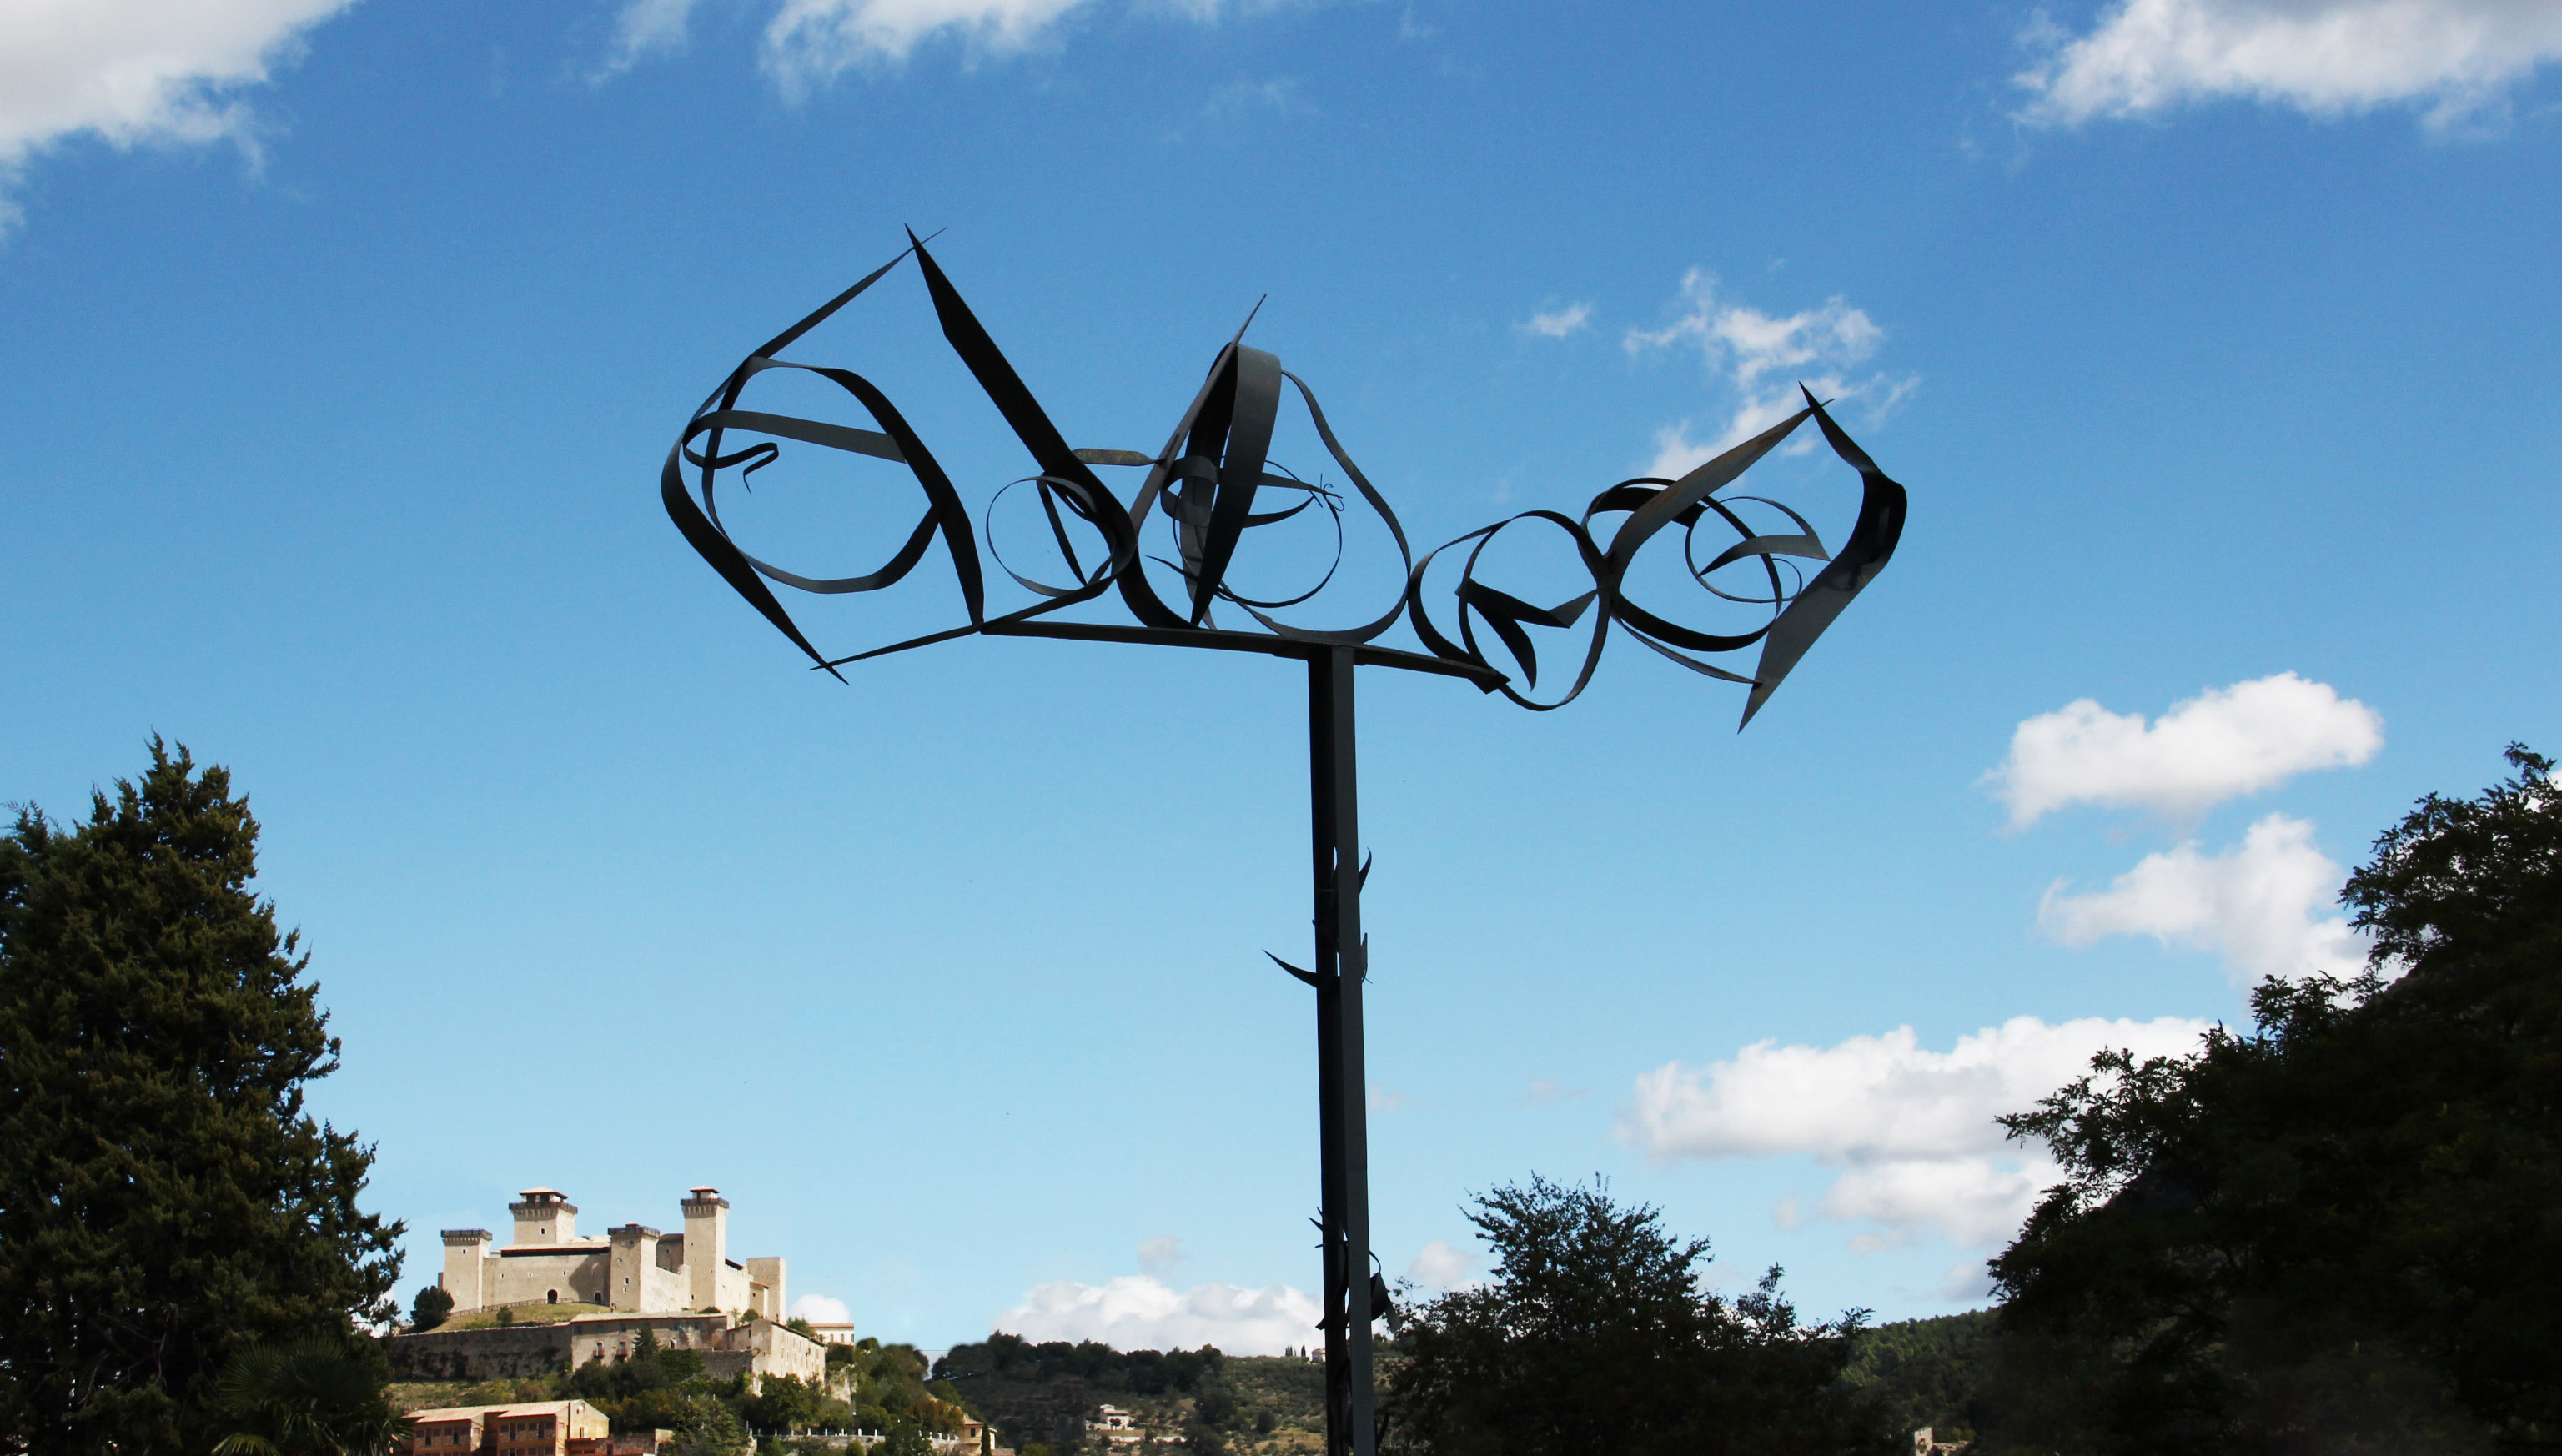 Sculptures in the city - Spoleto 1962